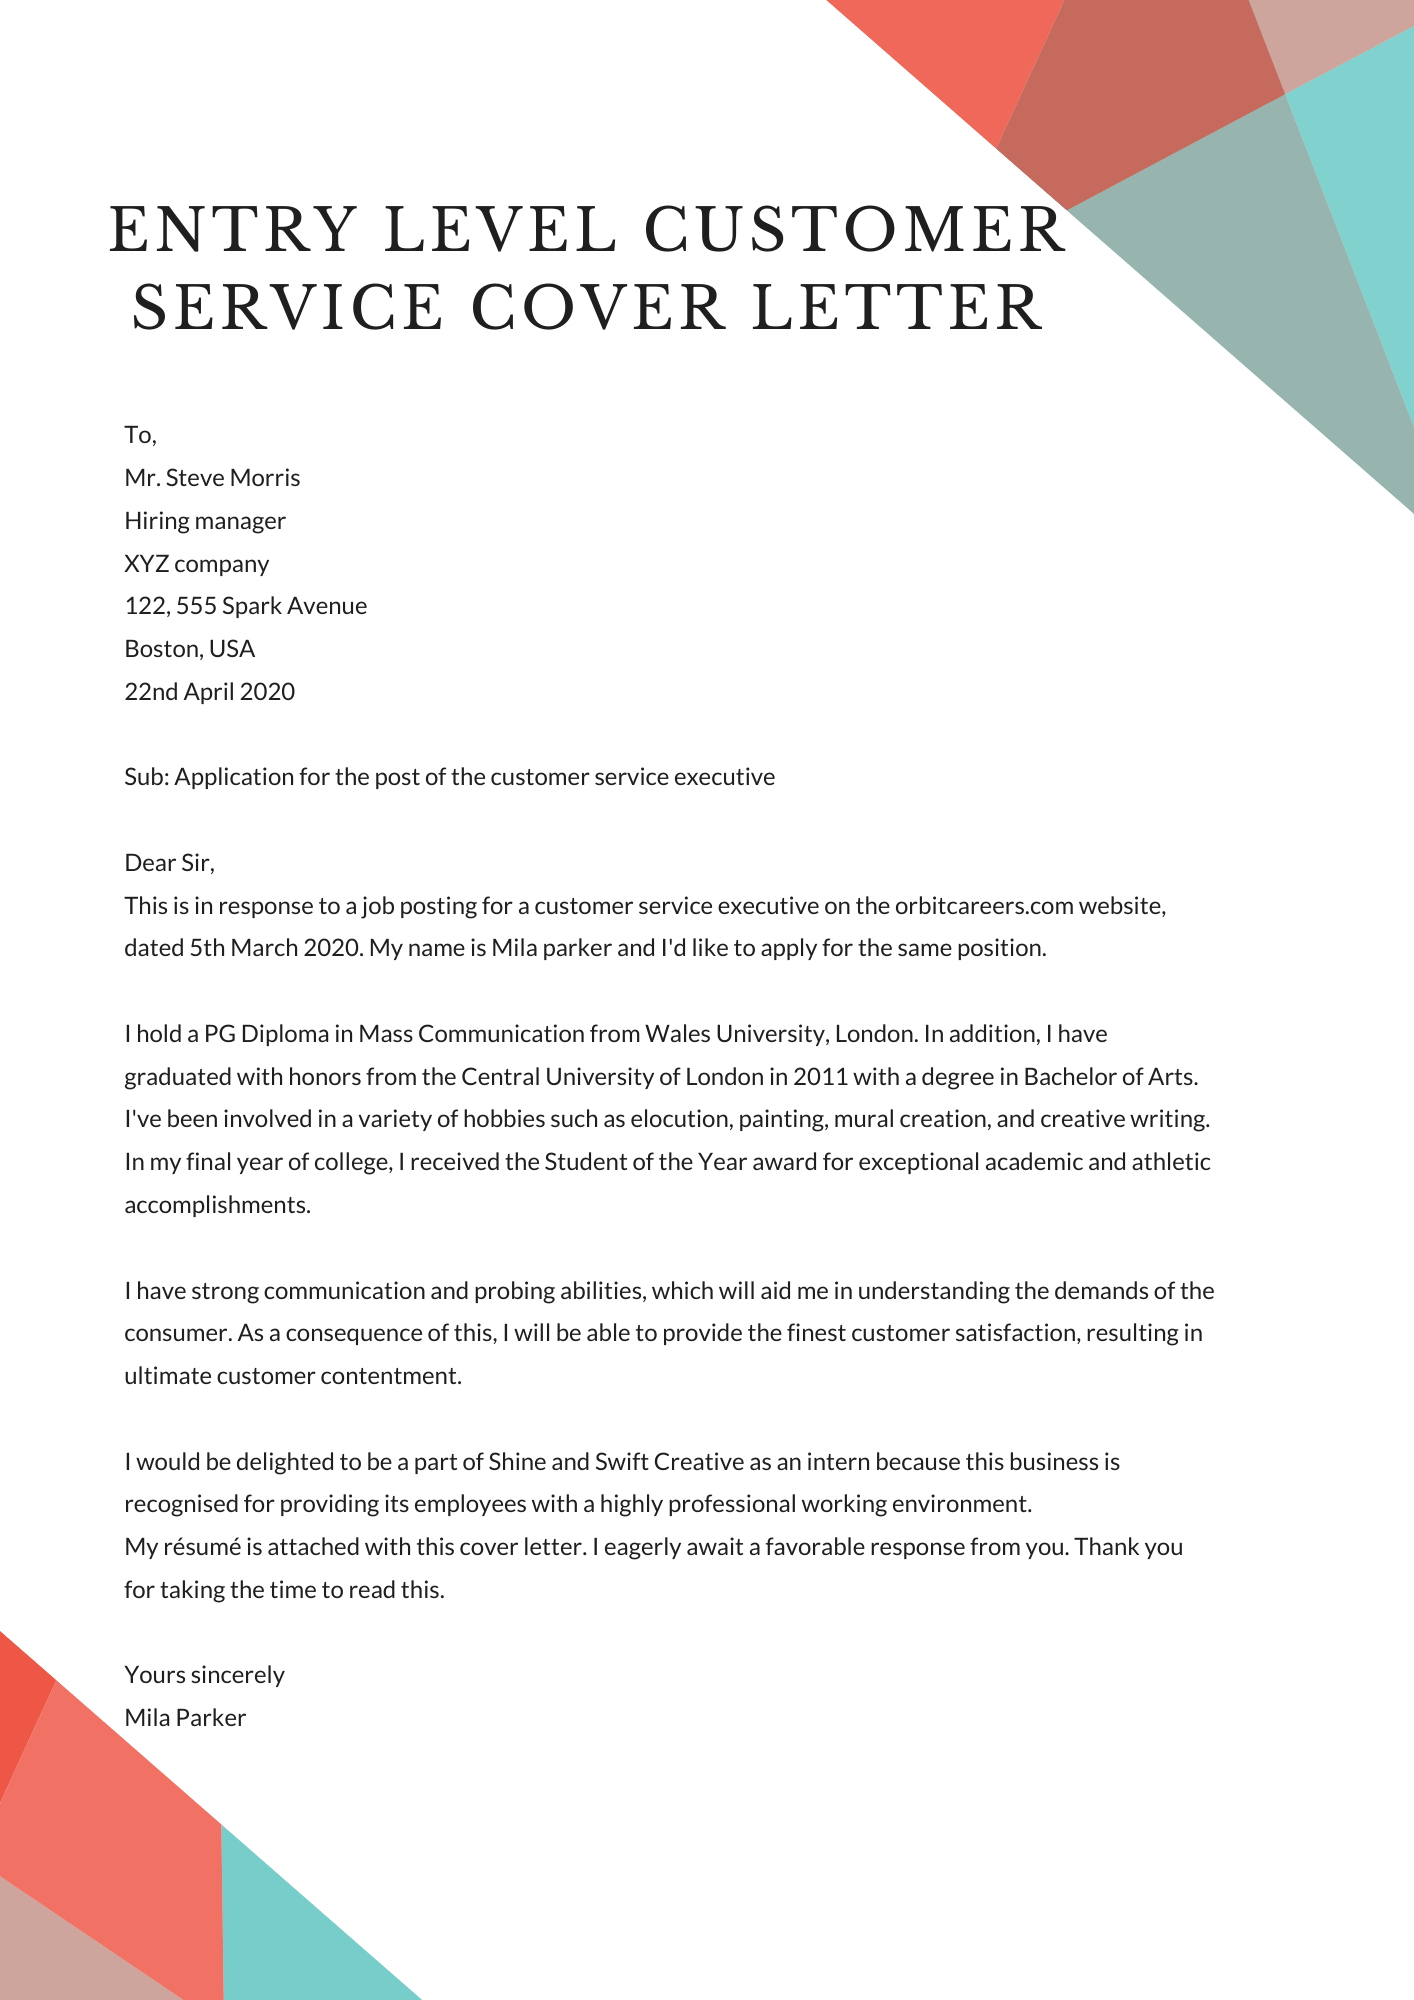 Entry Level Customer Service Cover Letter